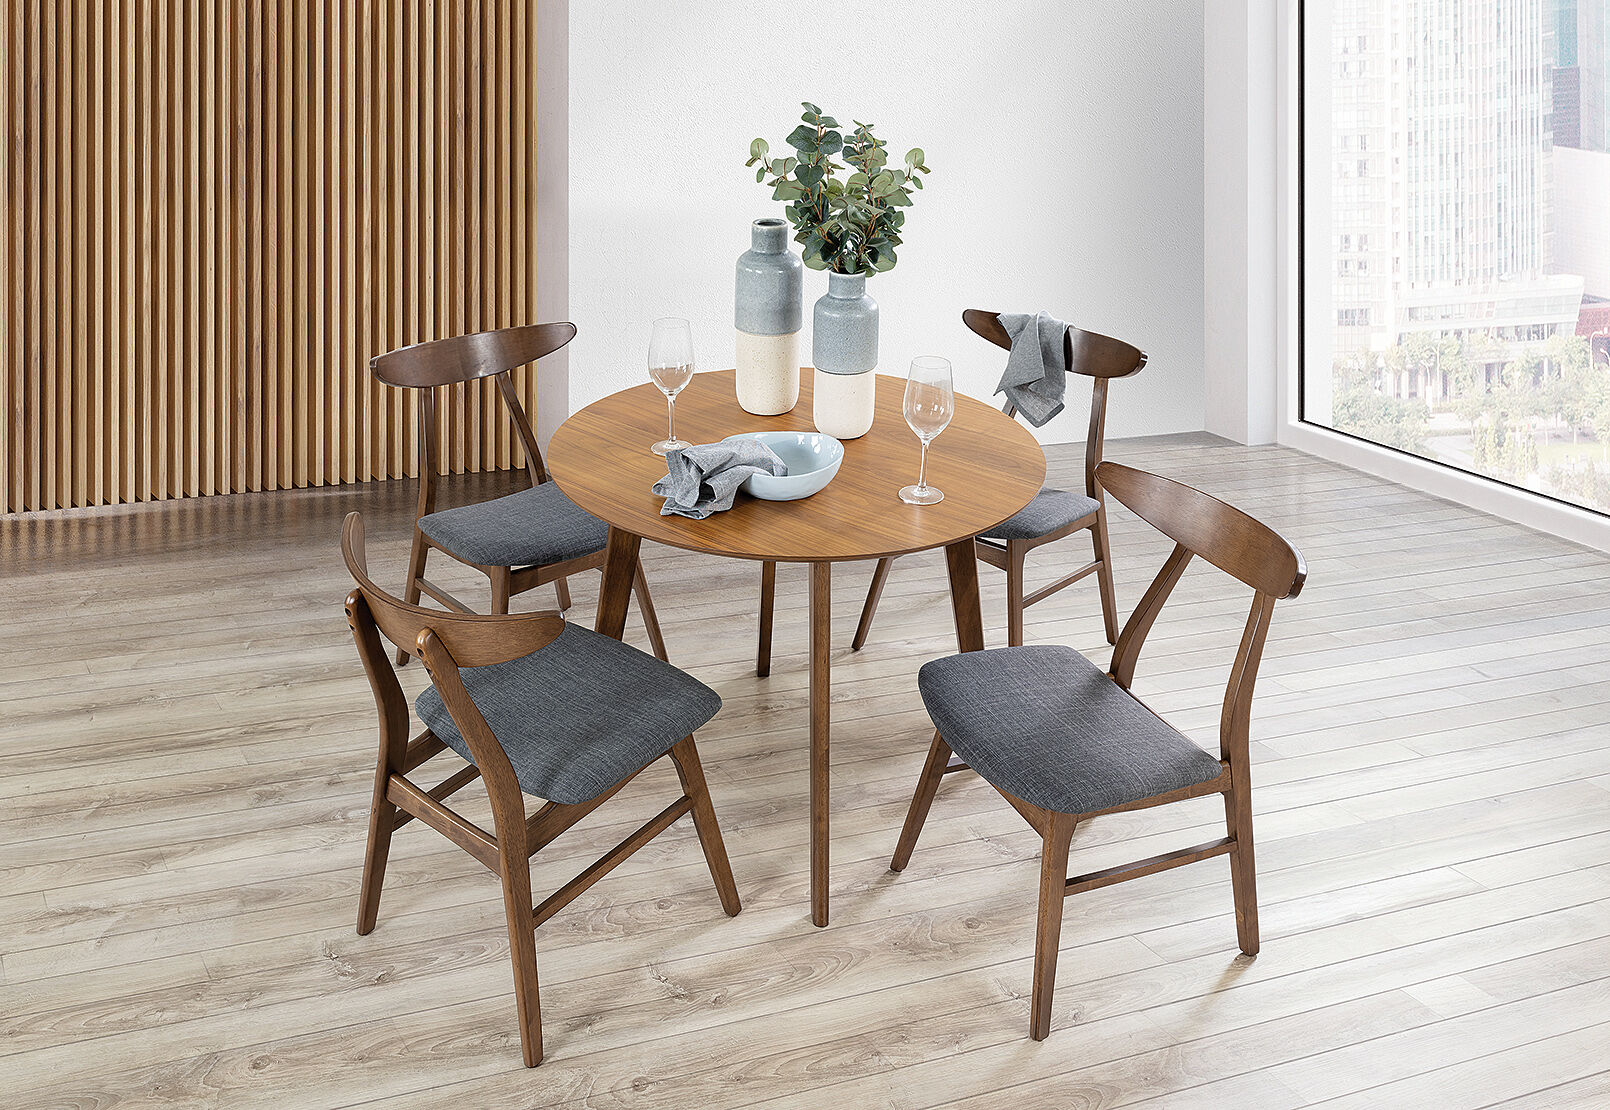 5 Piece Dining Suite With Elli Dining Chairs Elli 5 Piece Dining Suite With Elli Dining Chairs Amart Furniture